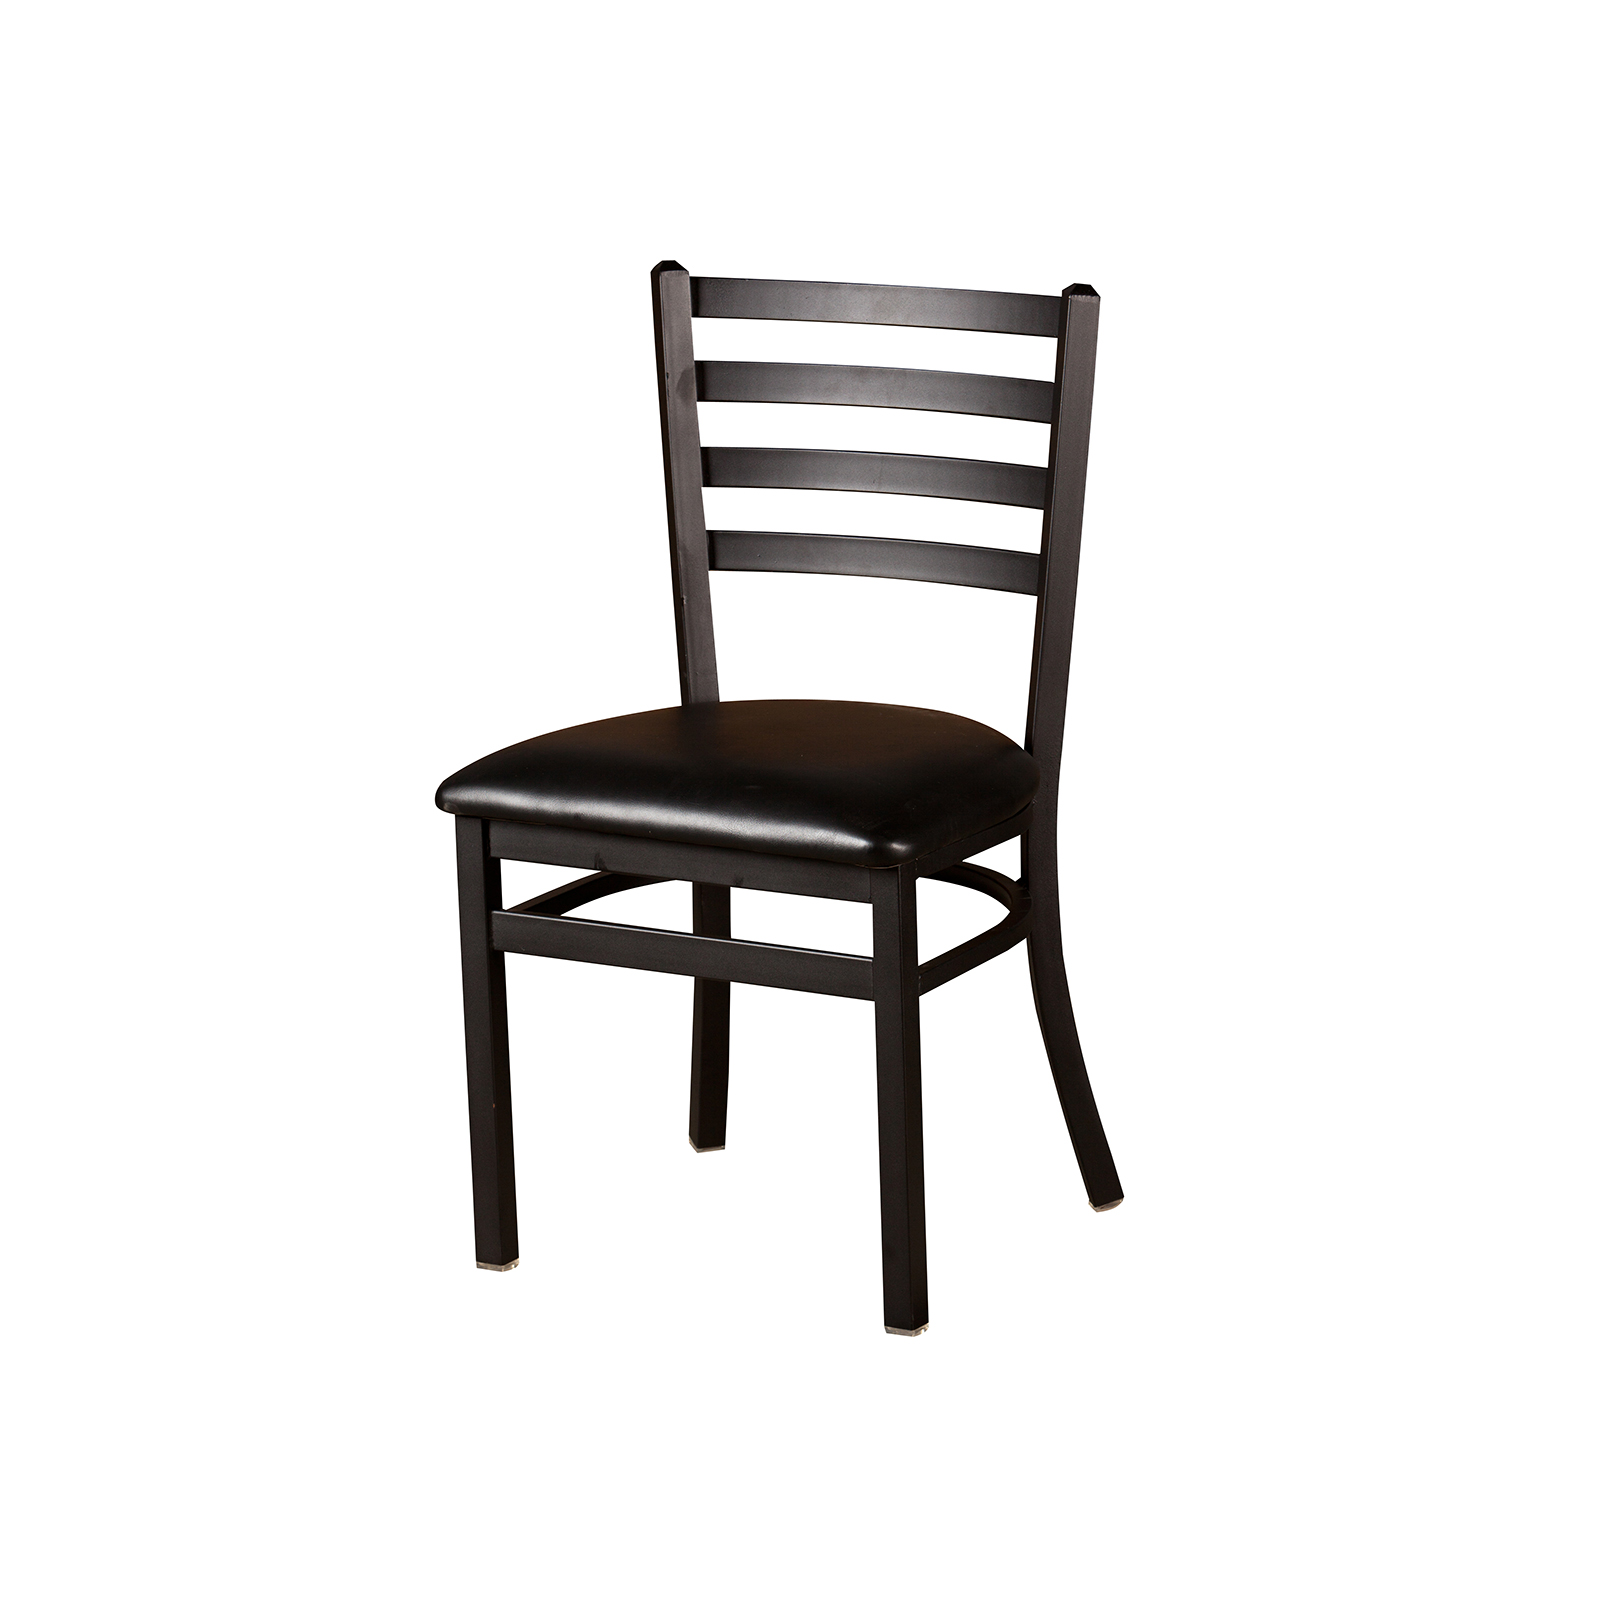 Oak Street SL3160 chair, side, indoor